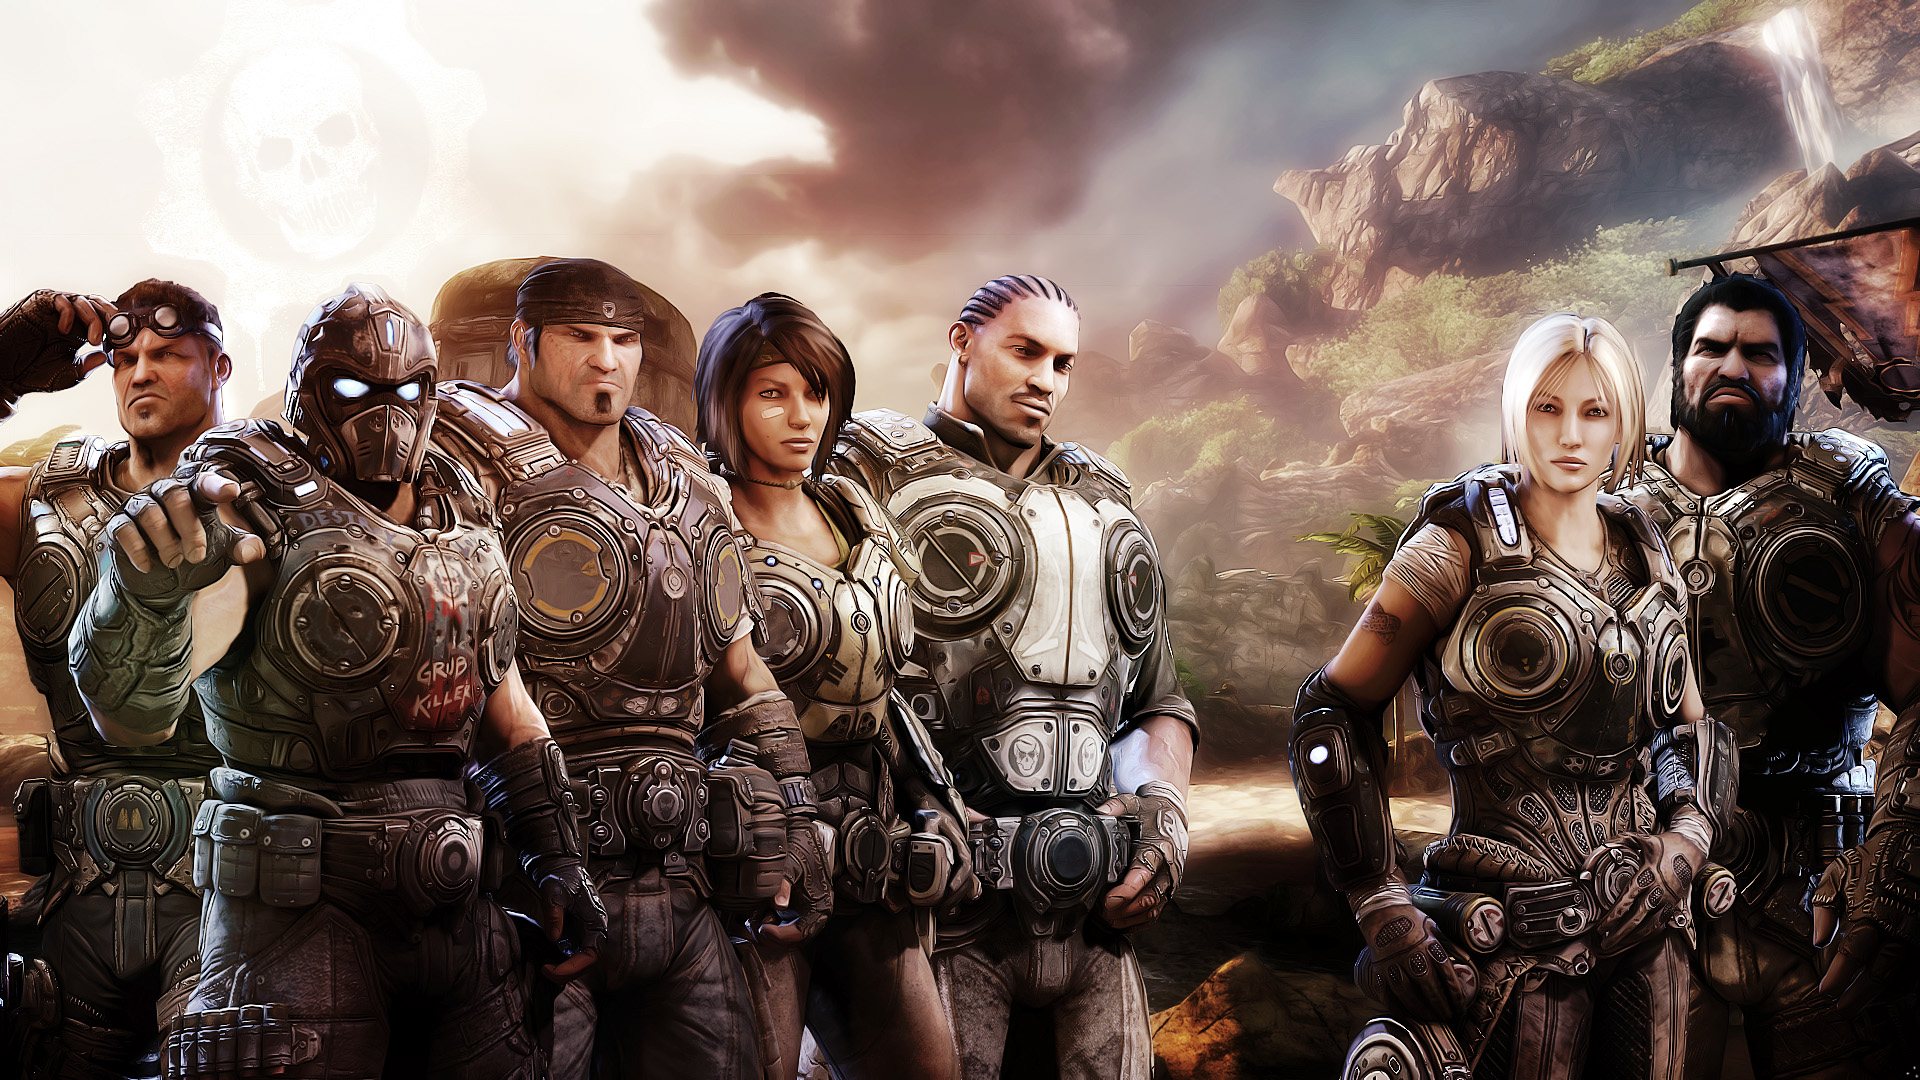 wallpaper hd The Gears of War